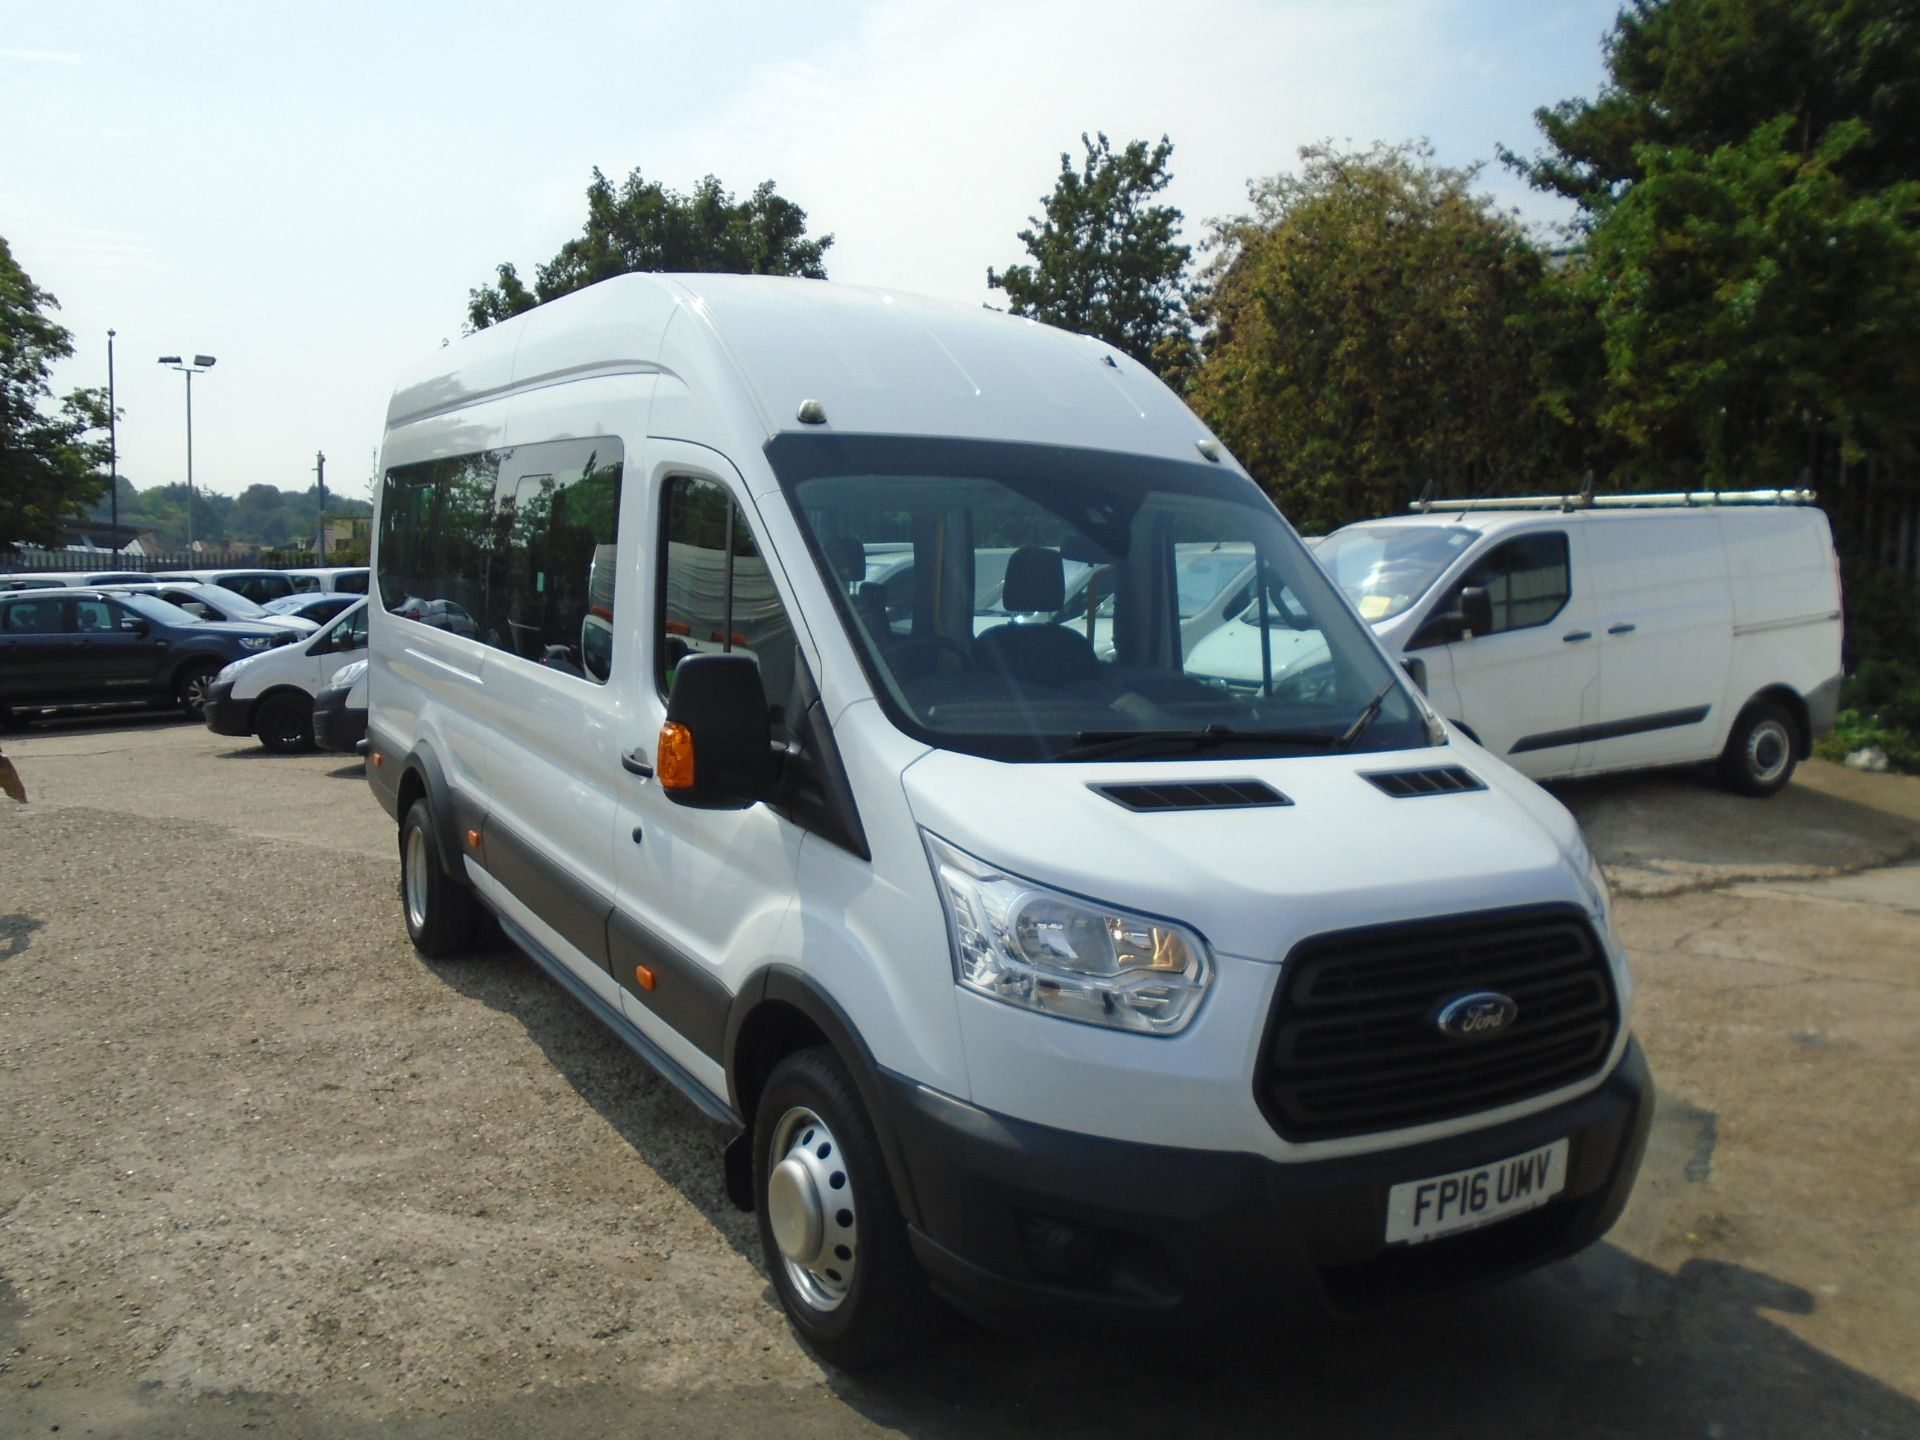 2016 Ford Transit 2.2 Tdci 125Ps H3 17 Seater (FP16UMV)